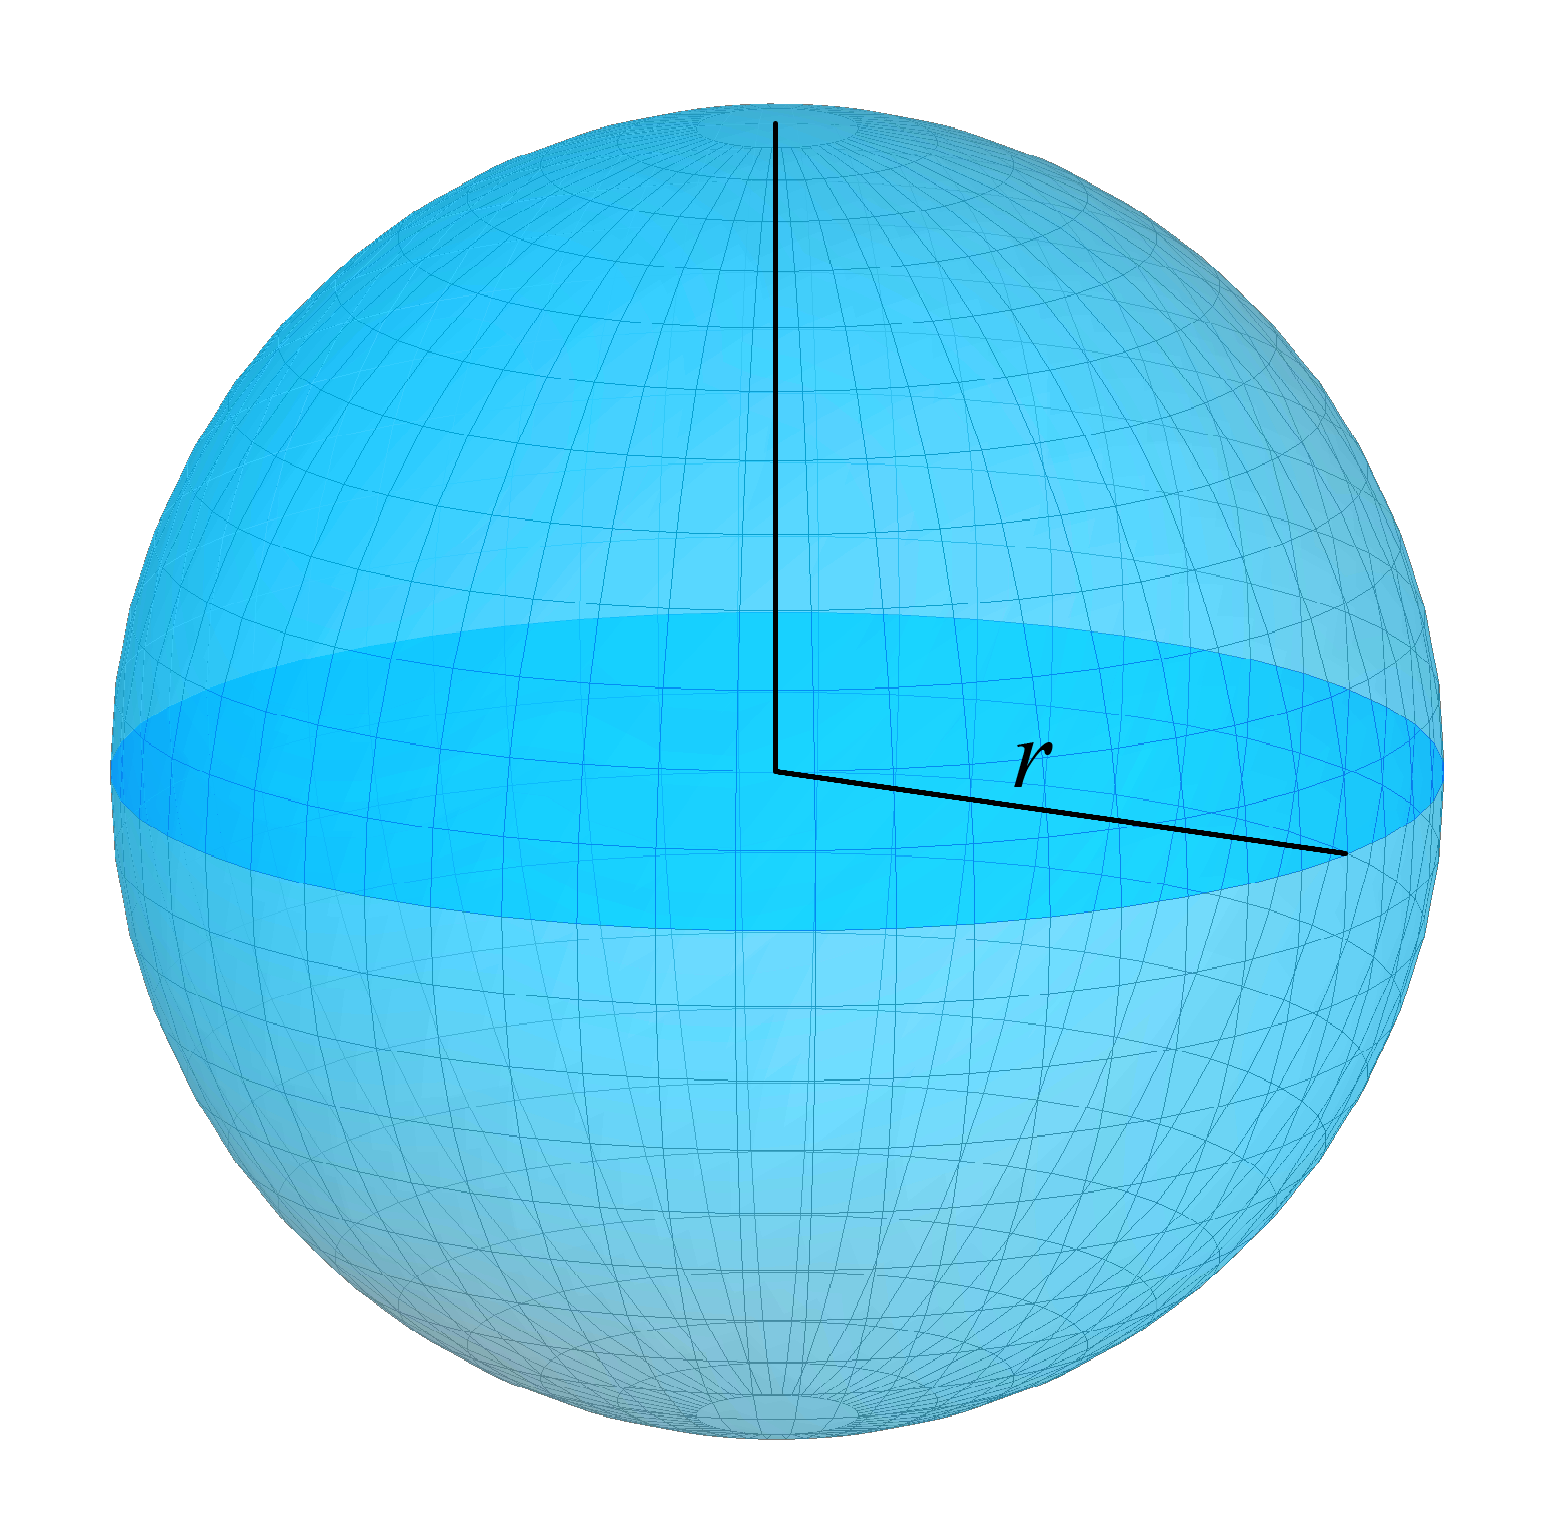 Area and Volume Of Sphere